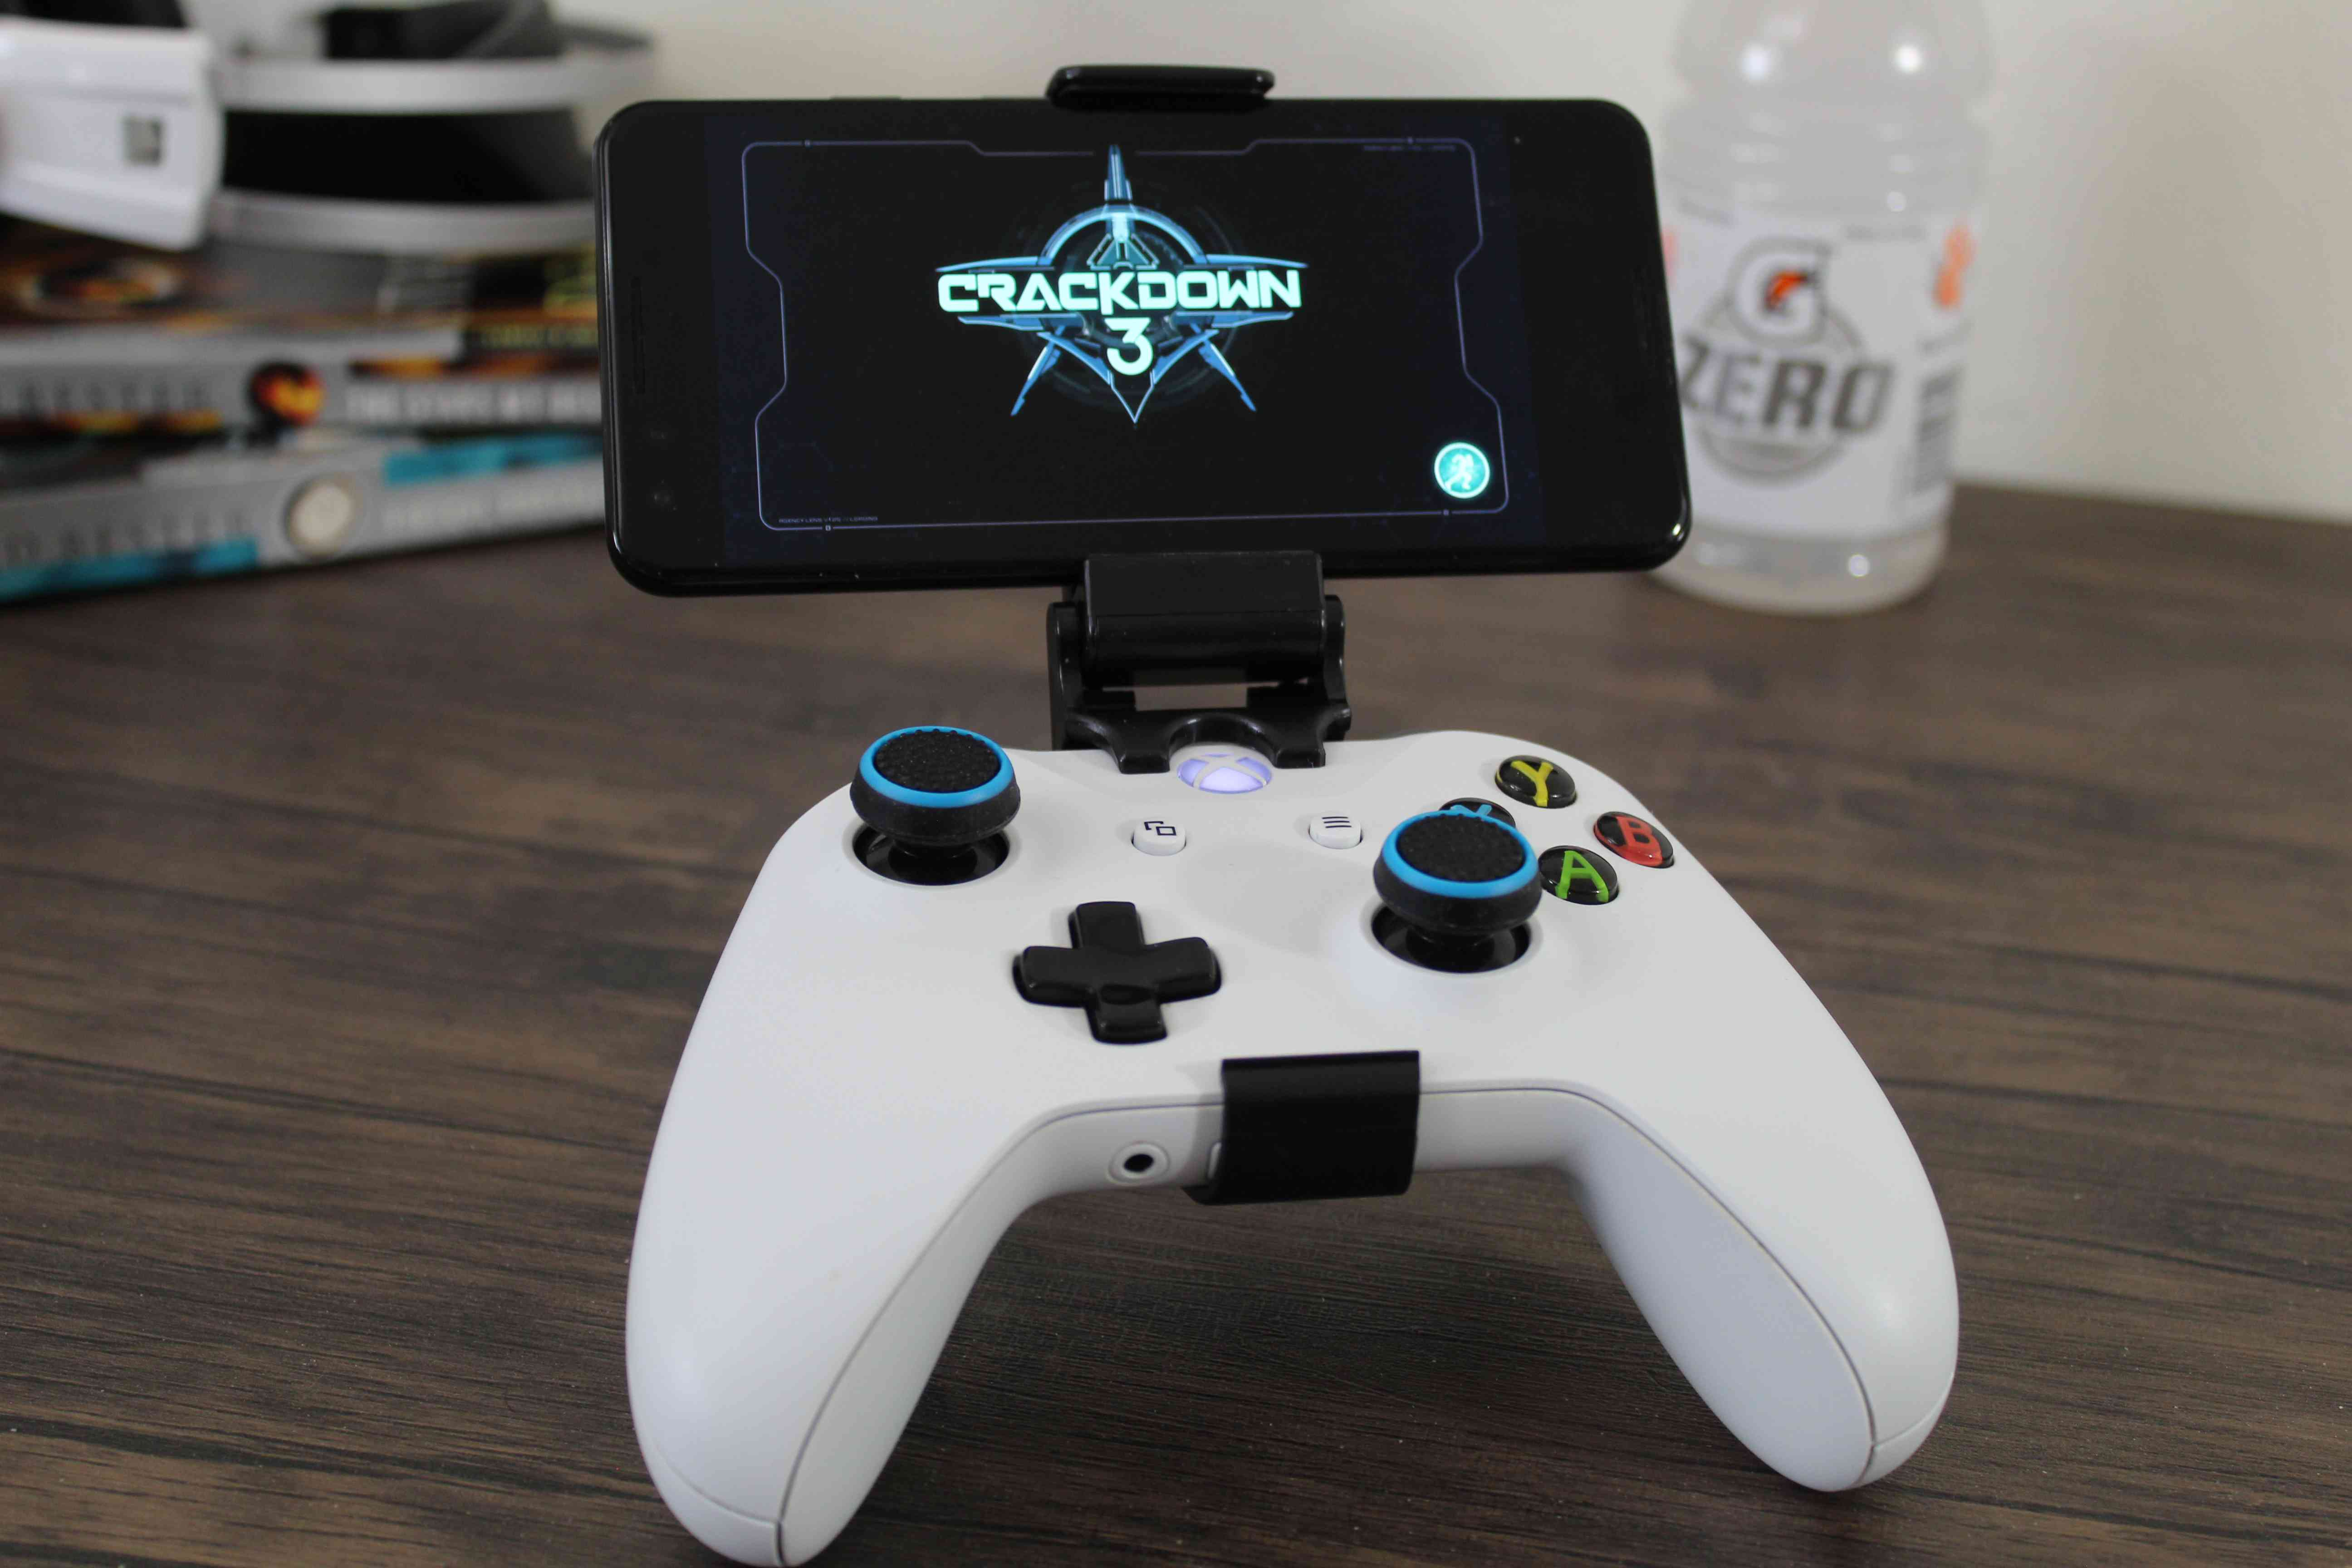 Crackdown 3 streaming to an Android phone.